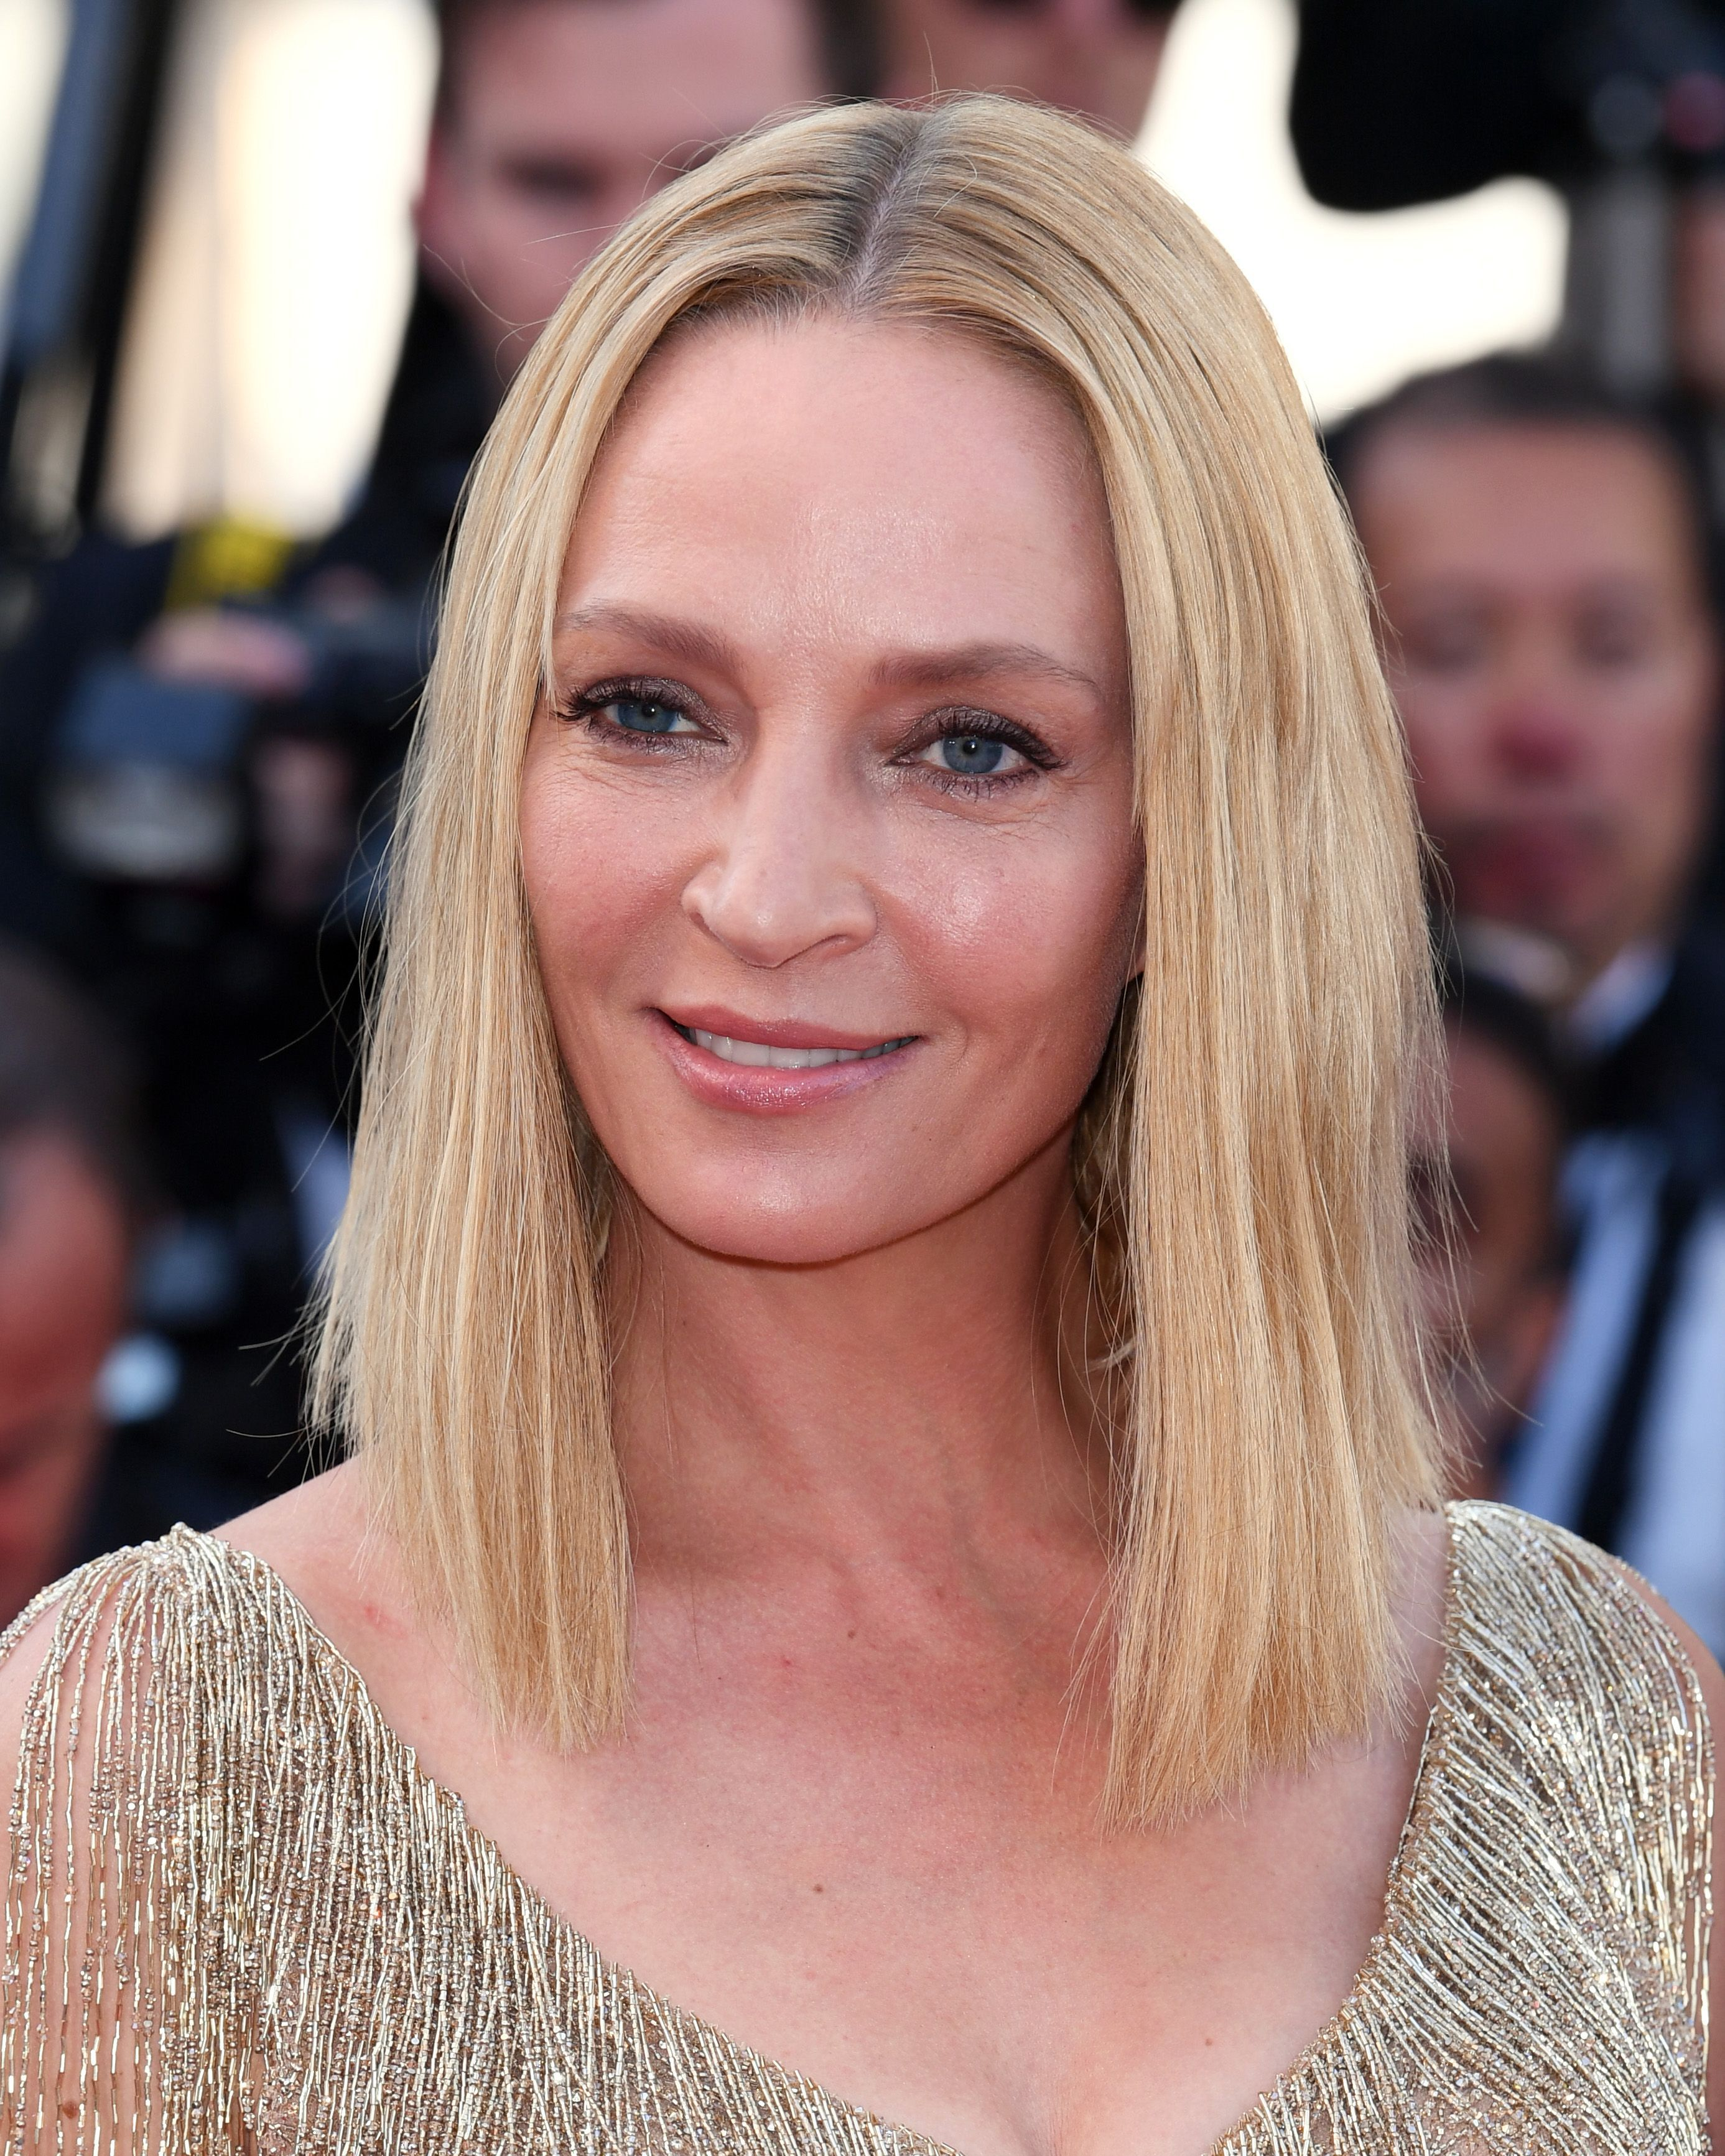 Lob Hair - Mid-Length Hairstyle Inspiration From The Celebs Getting ...